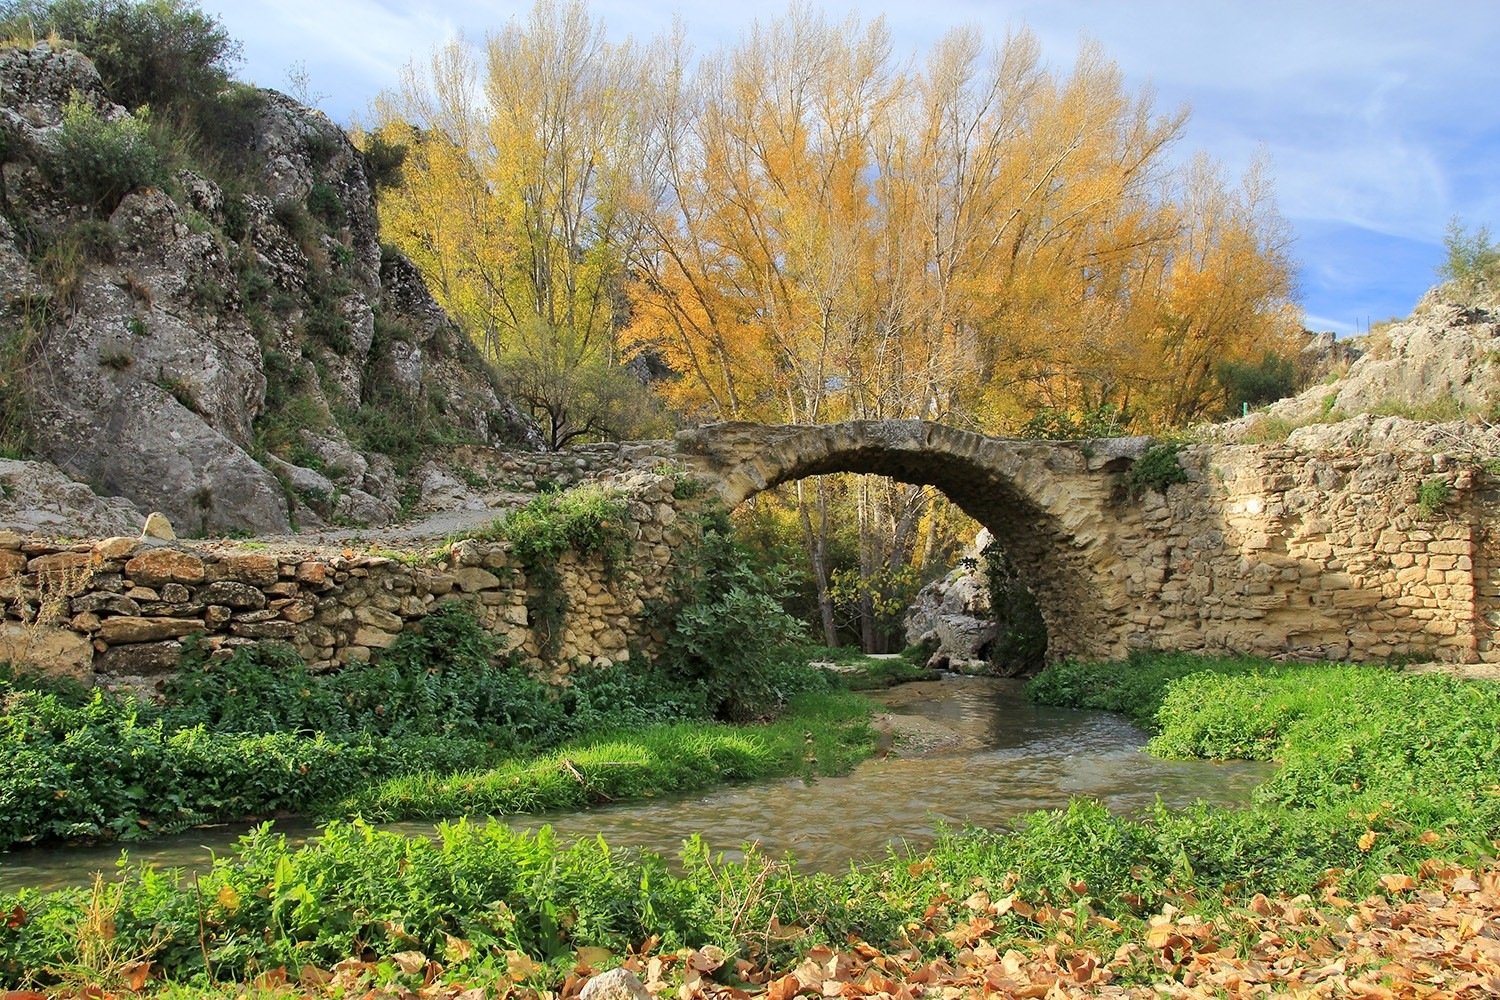 The Roman Bridge in Alhama de Granada